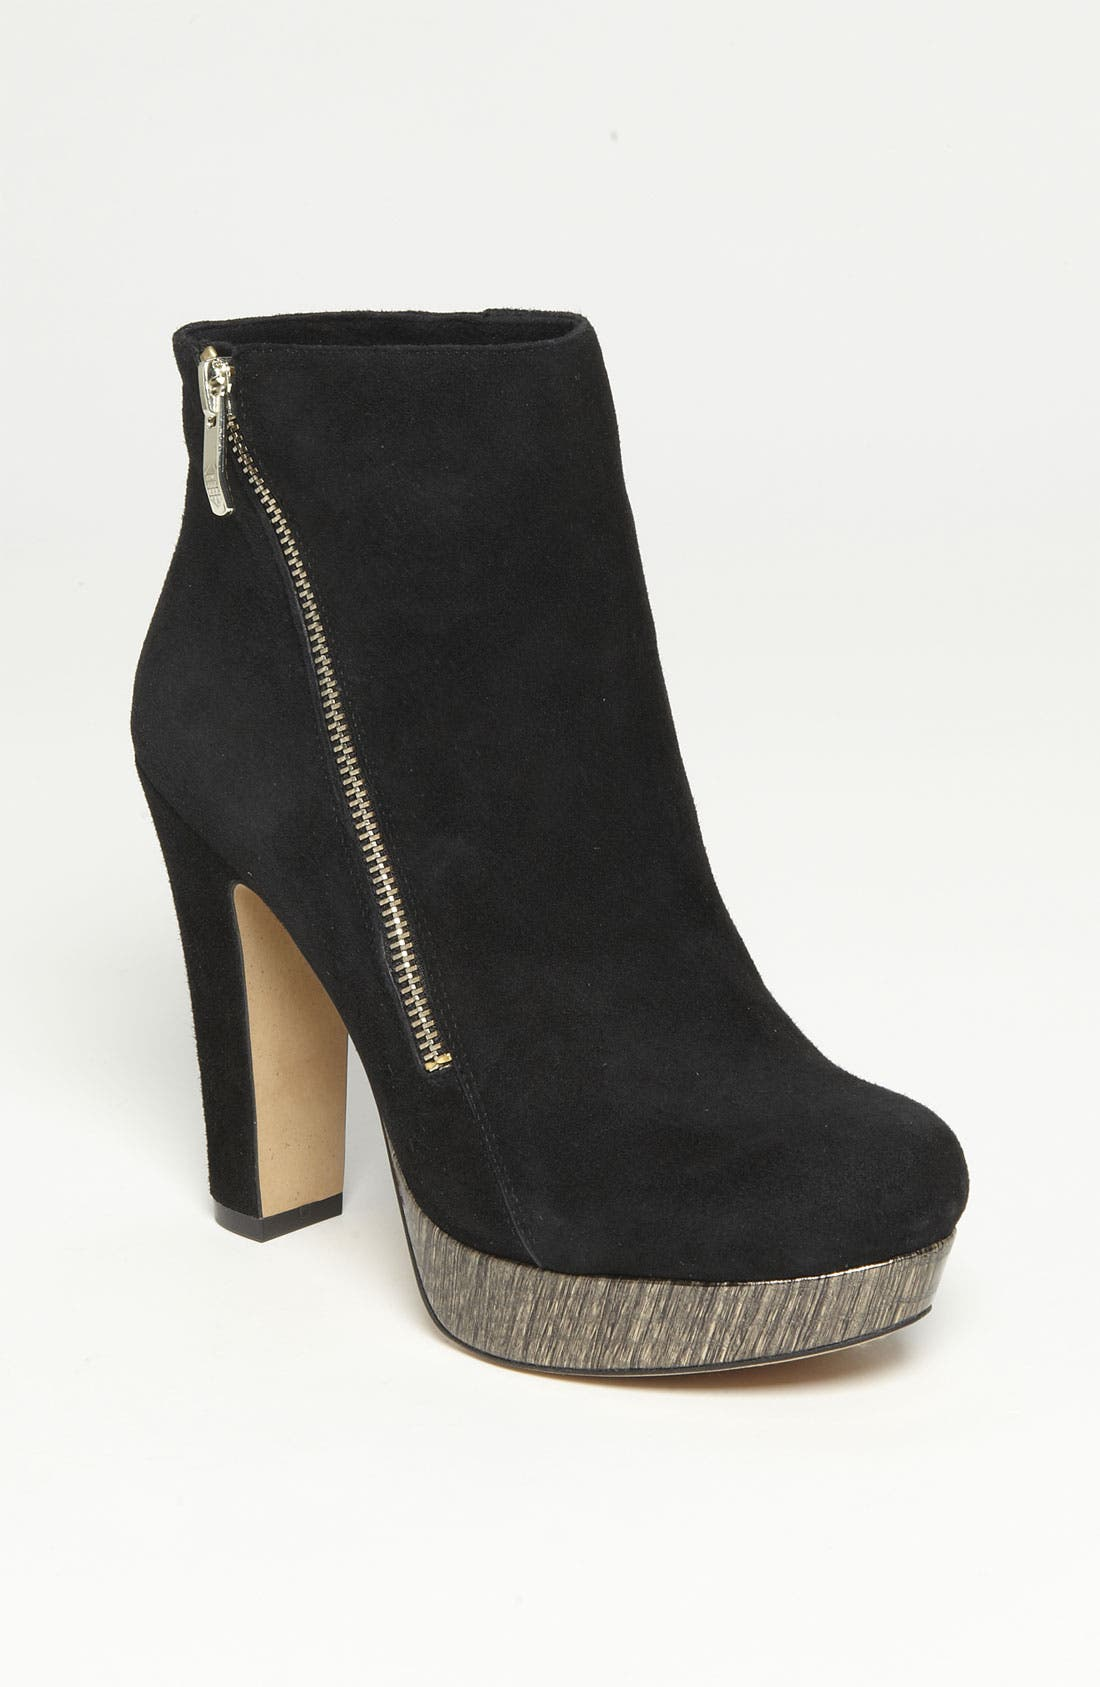 Alternate Image 1 Selected - Vince Camuto 'Jerra' Bootie